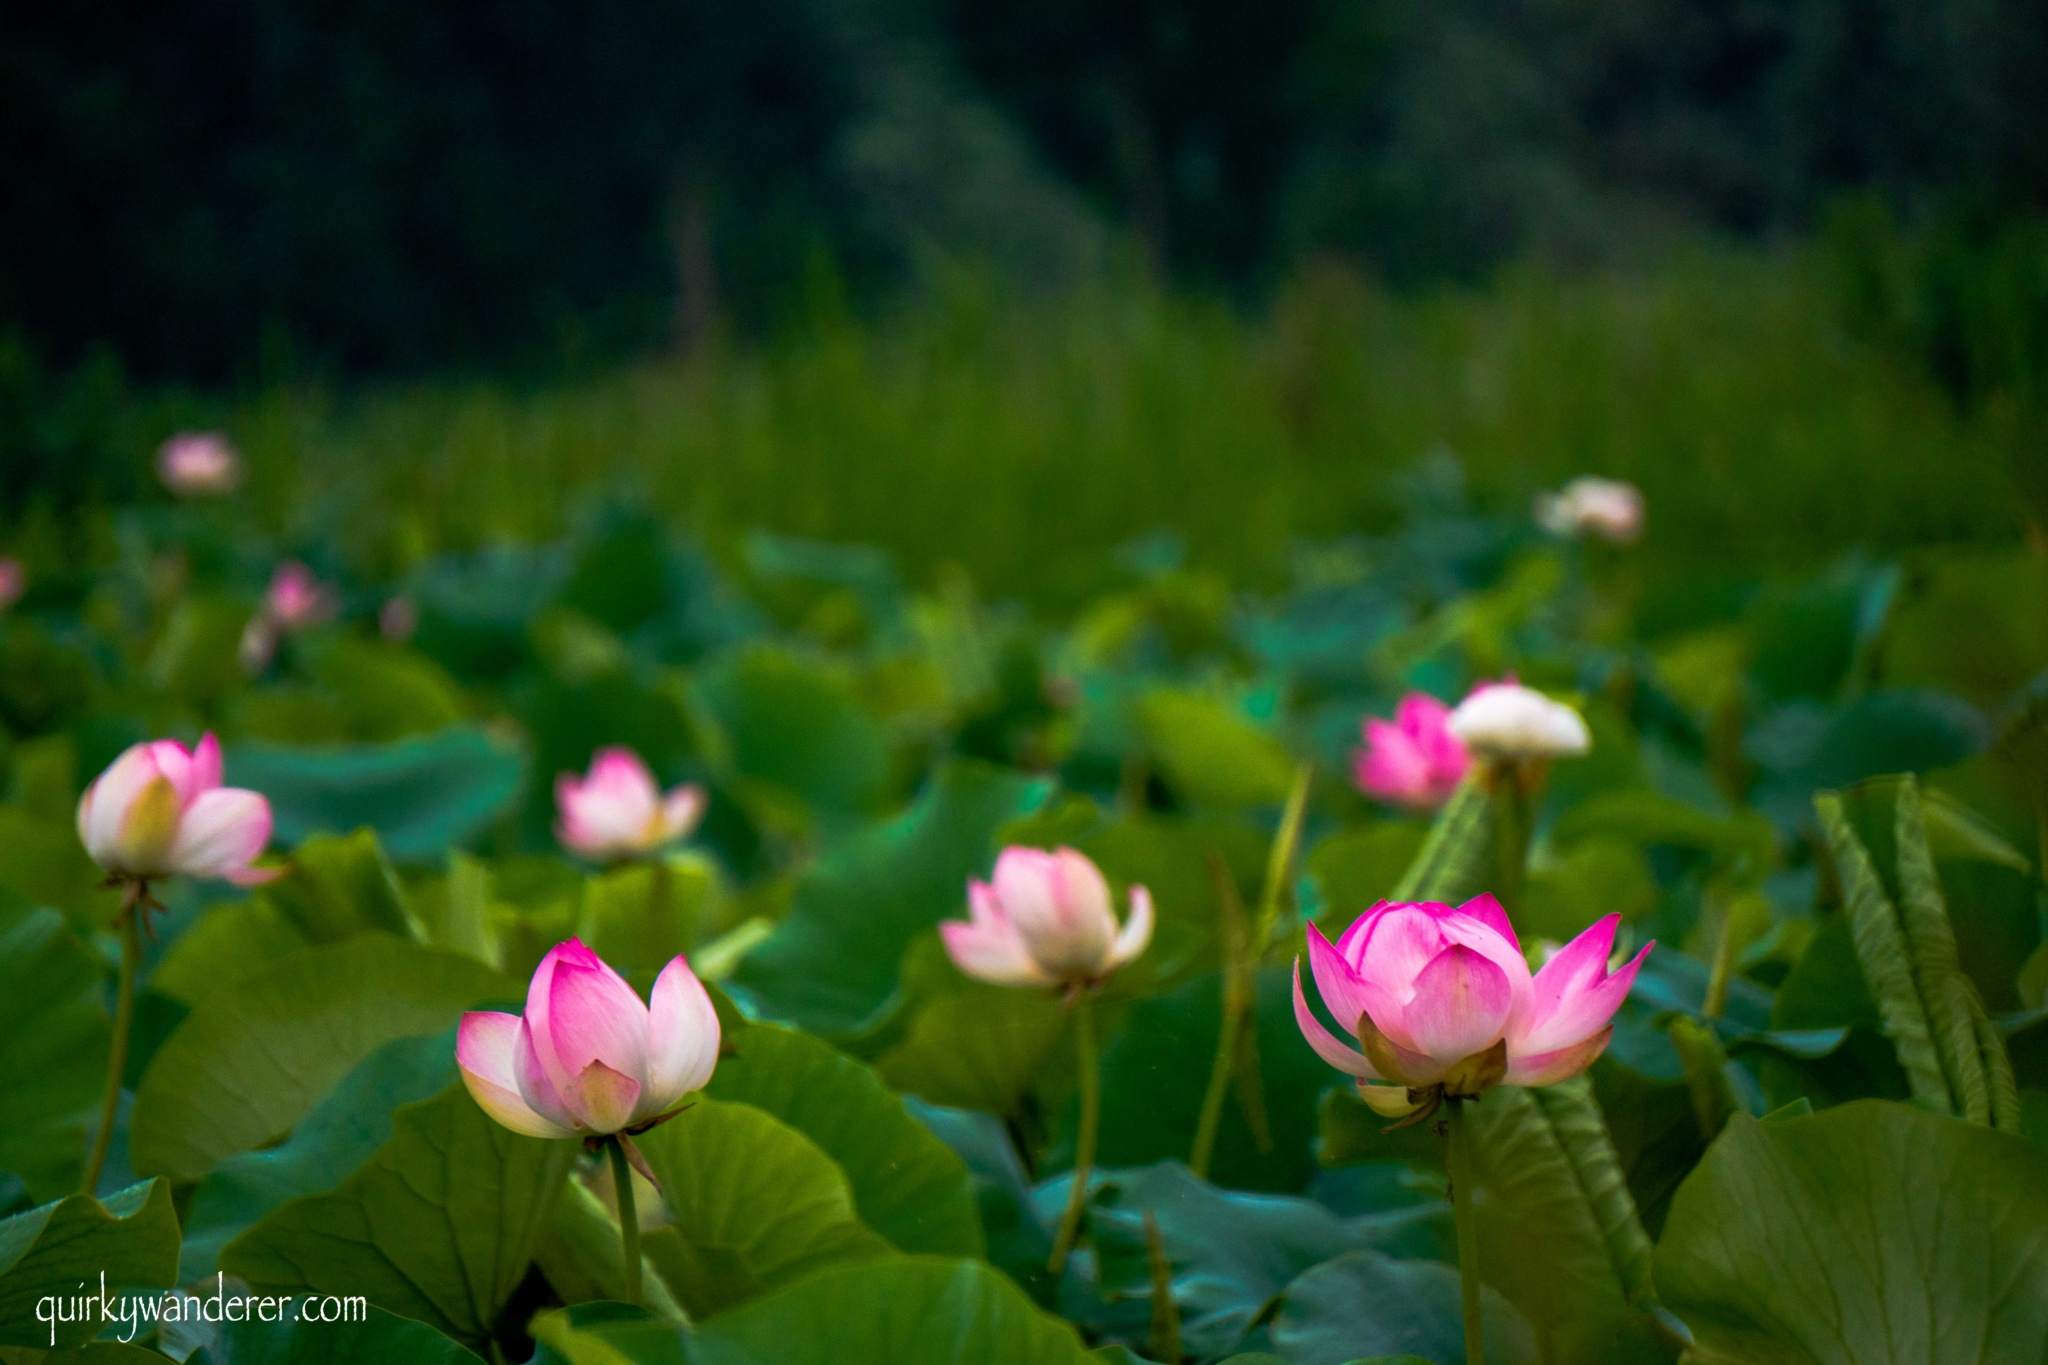 Lotus flowers in srinagar